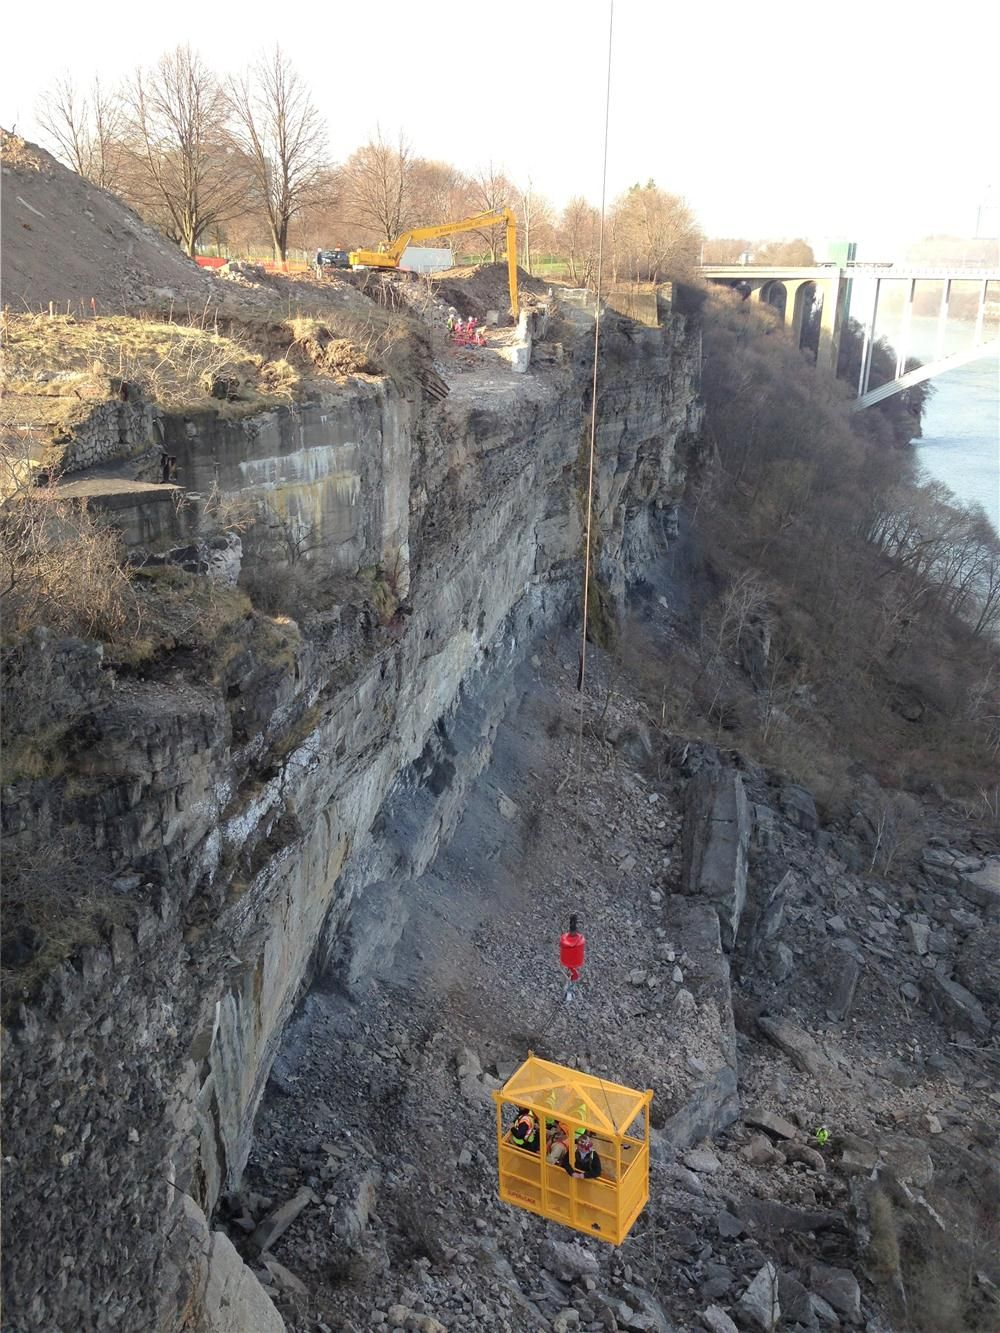 The work site is less than a mi. from Niagara Falls and the misty coolness generated by the falls sometimes produces marginal conditions. On windy days, the gondola was susceptible to swaying.